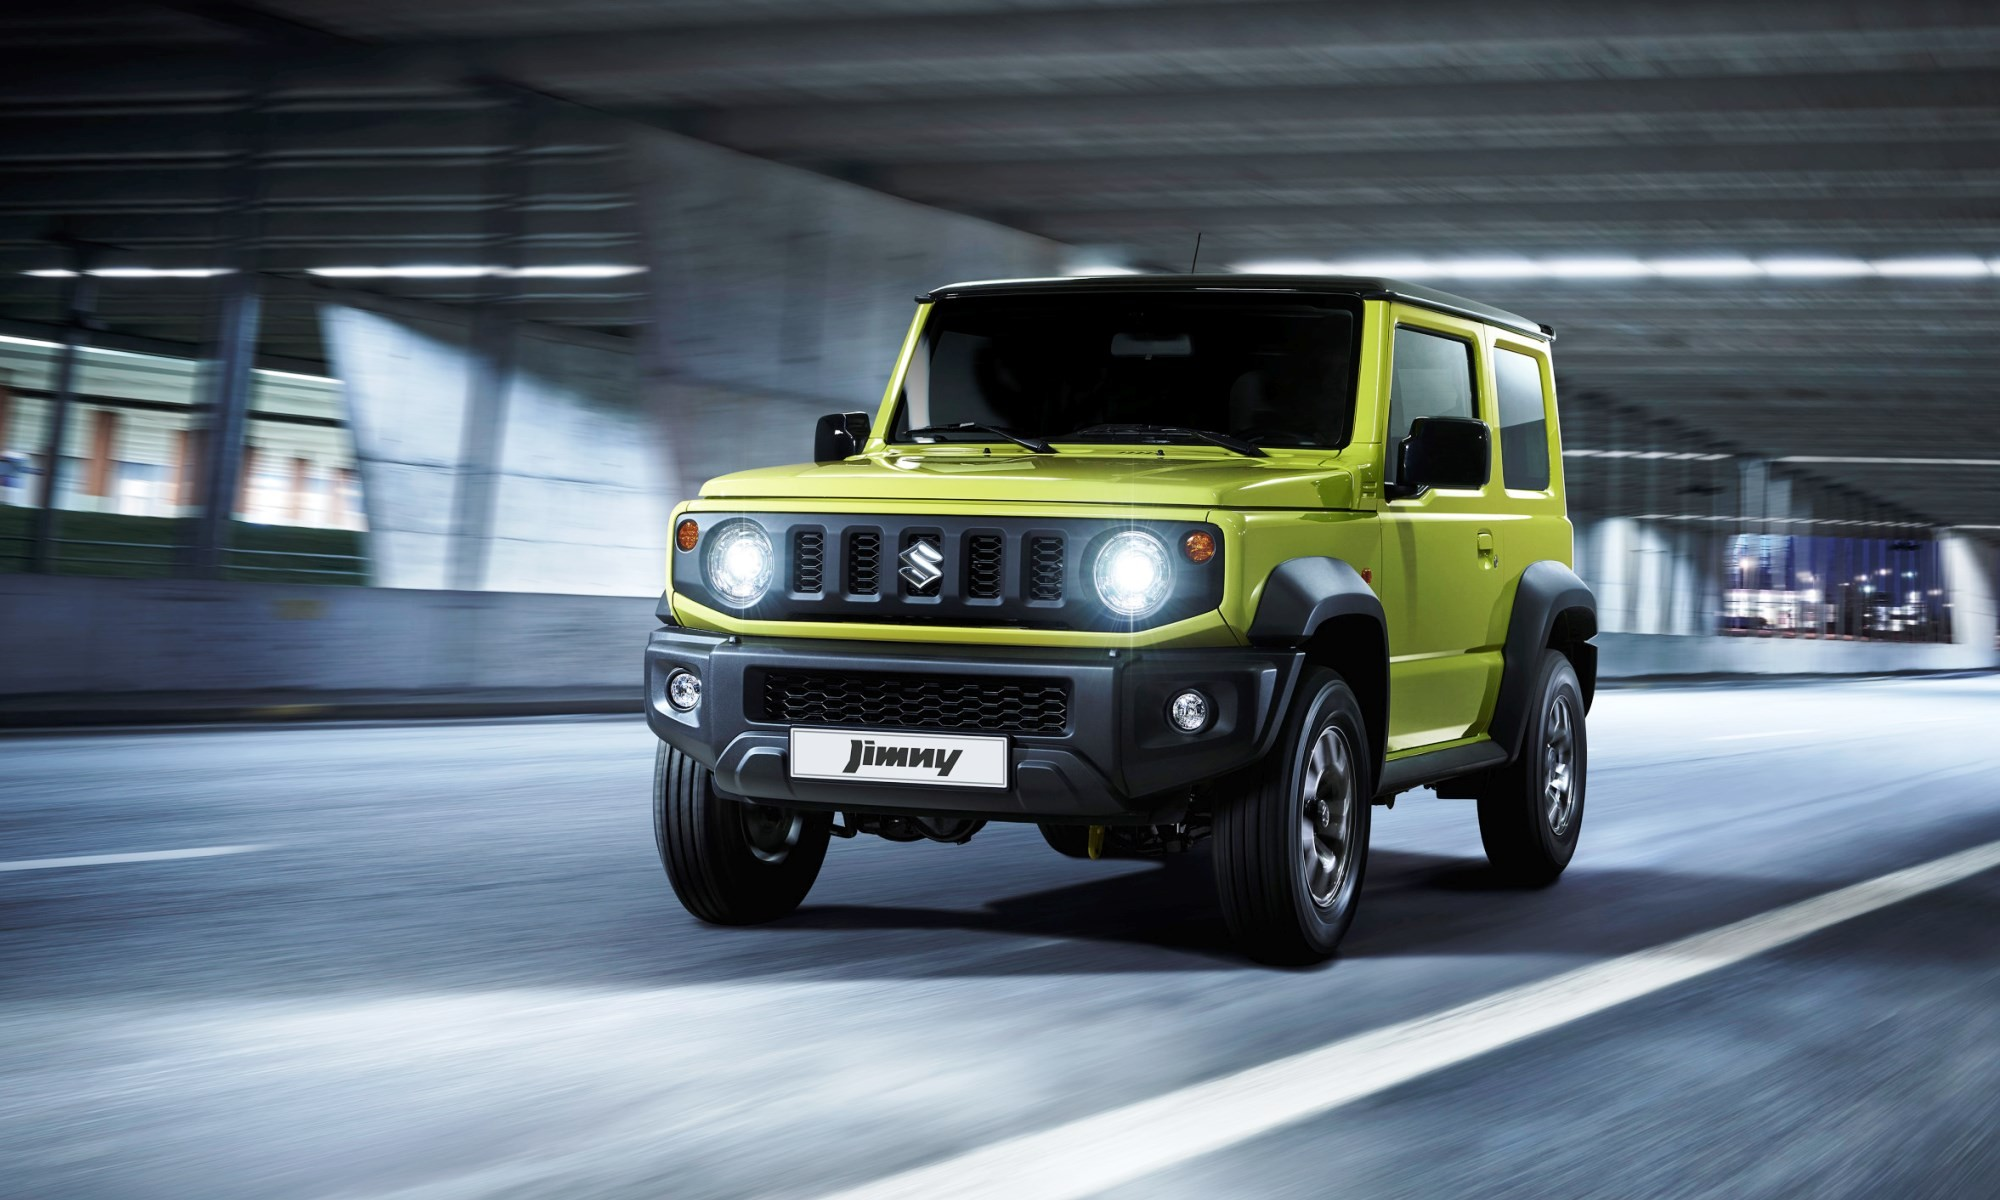 New Suzuki Jimny info and pricing